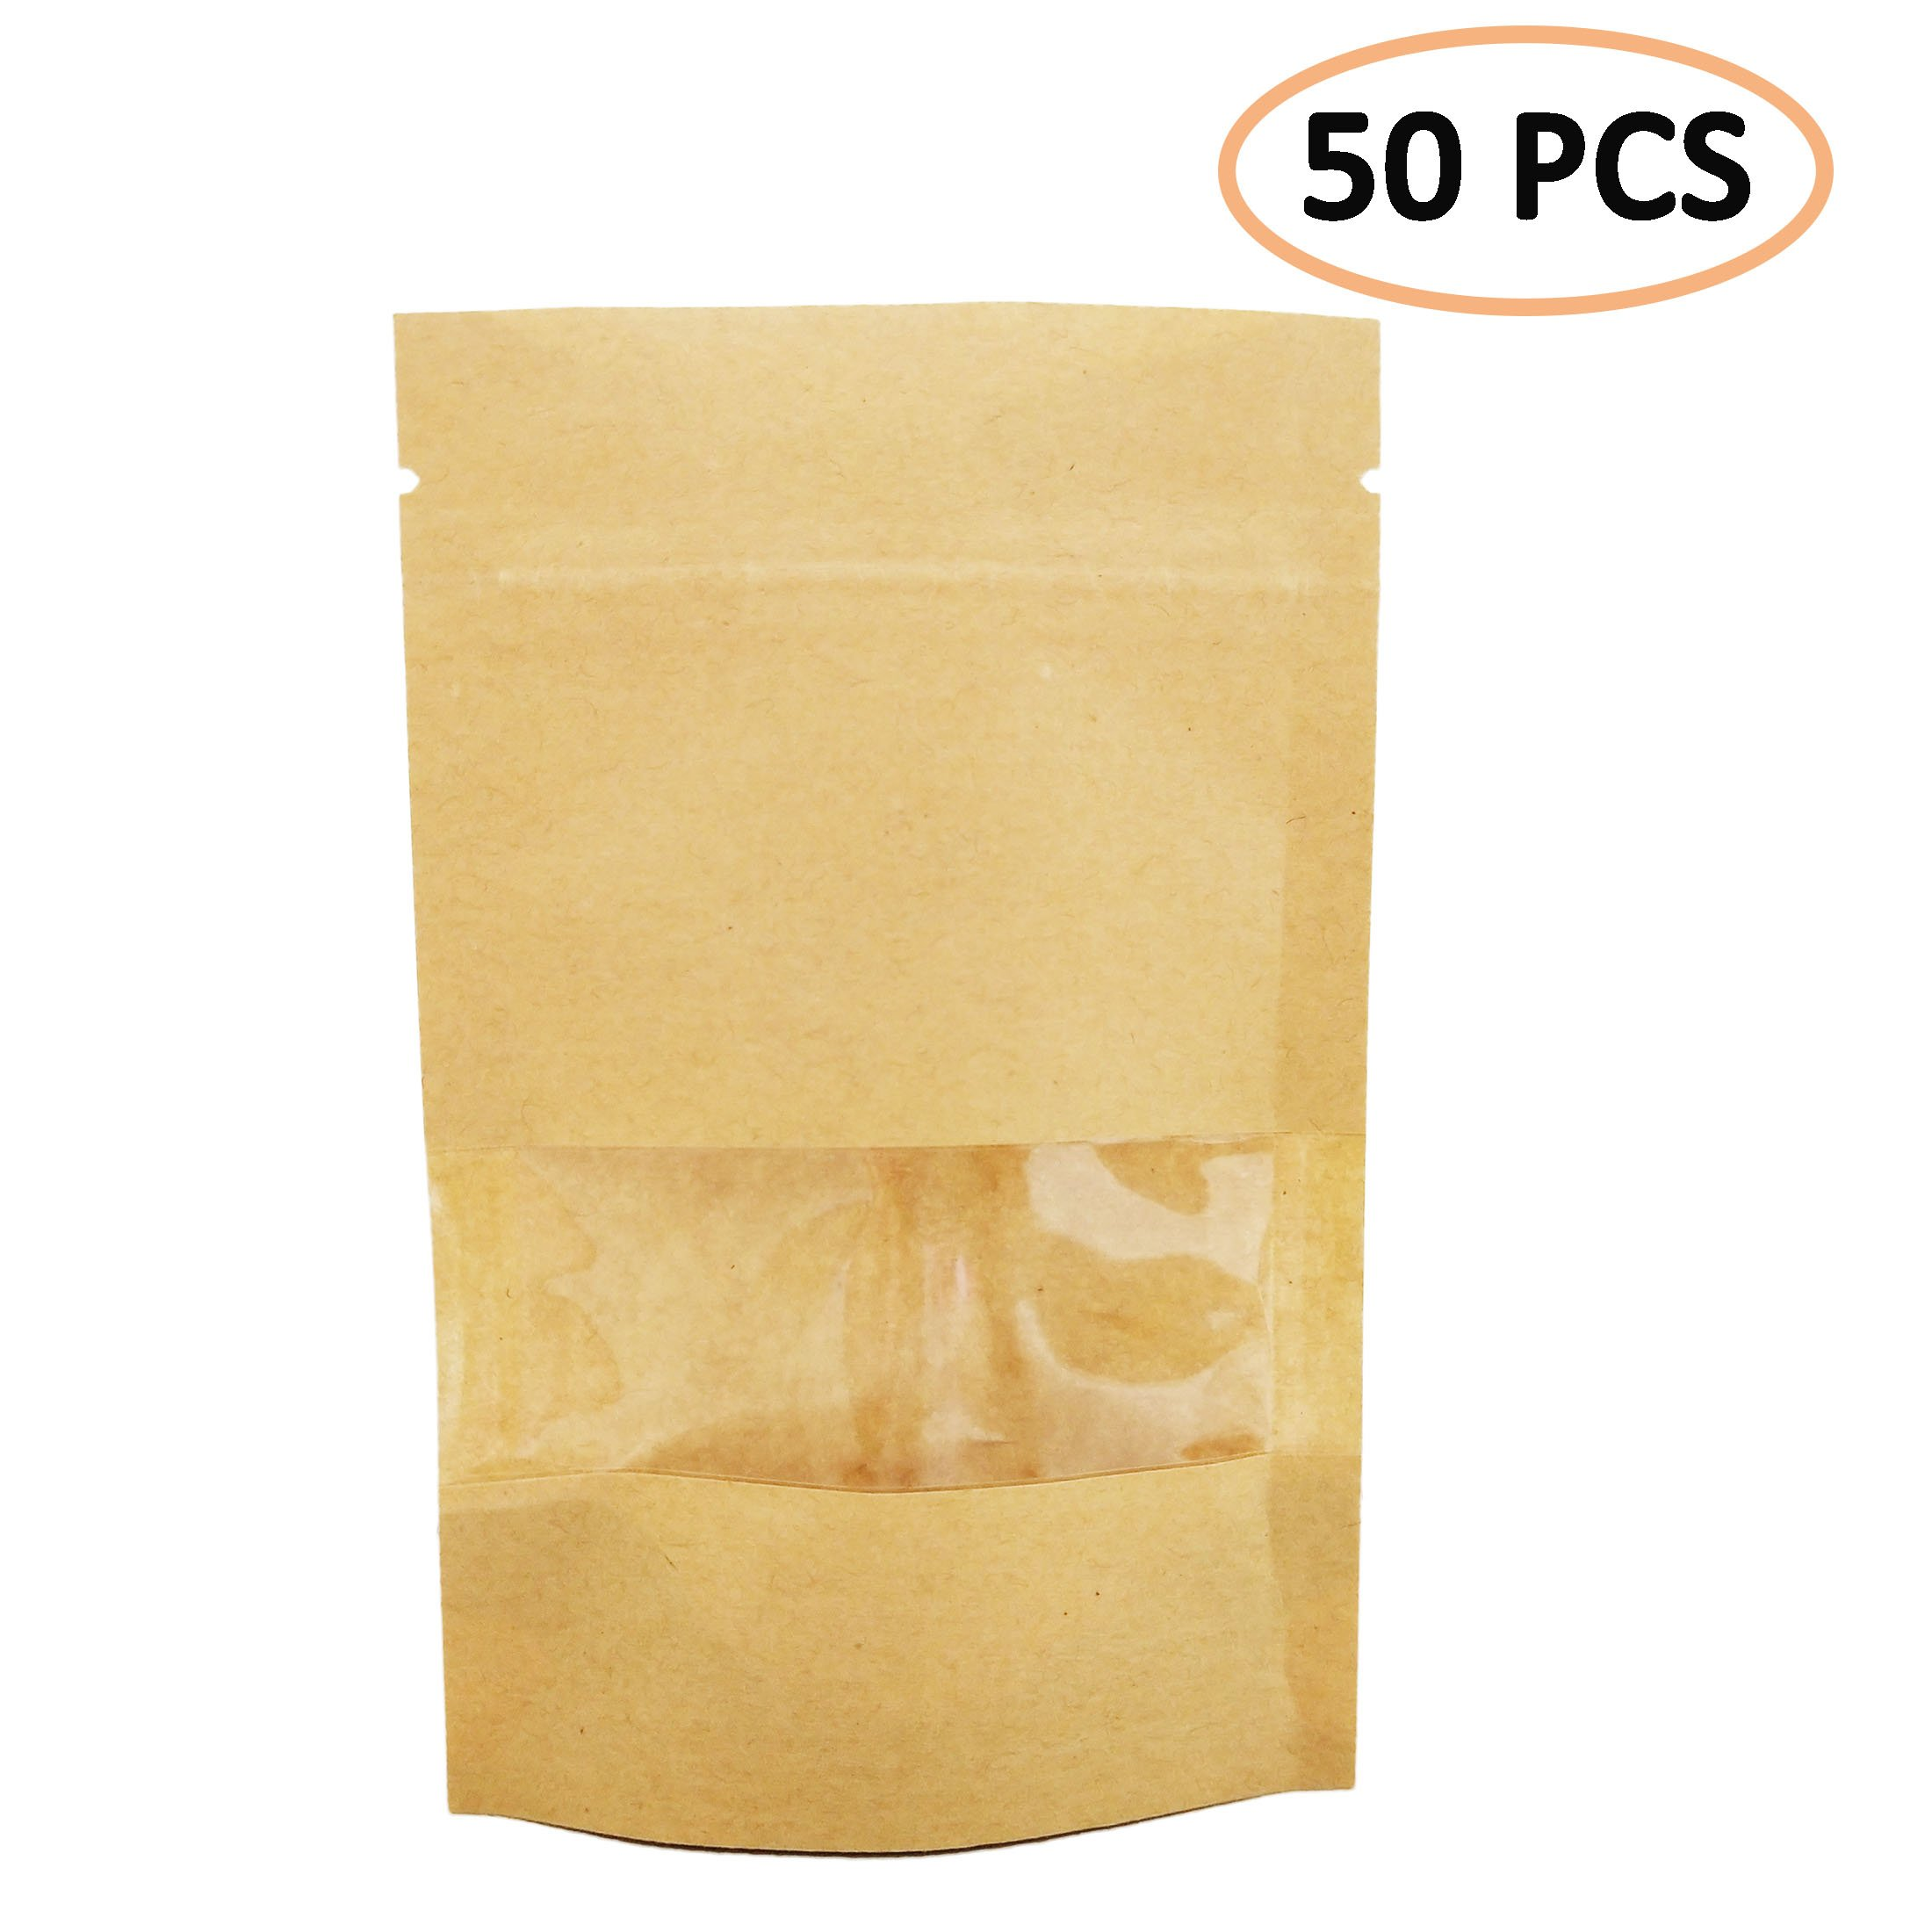 """50 PCS All-Purpose Kraft Paper Stand Up Bag, Zip Lock Reusable Kraft Package Bag Storage Pouch with Notch and Transparent Window for Storing Seeds, Snack and Nuts – Brown (50, 3.5""""5.5"""")"""